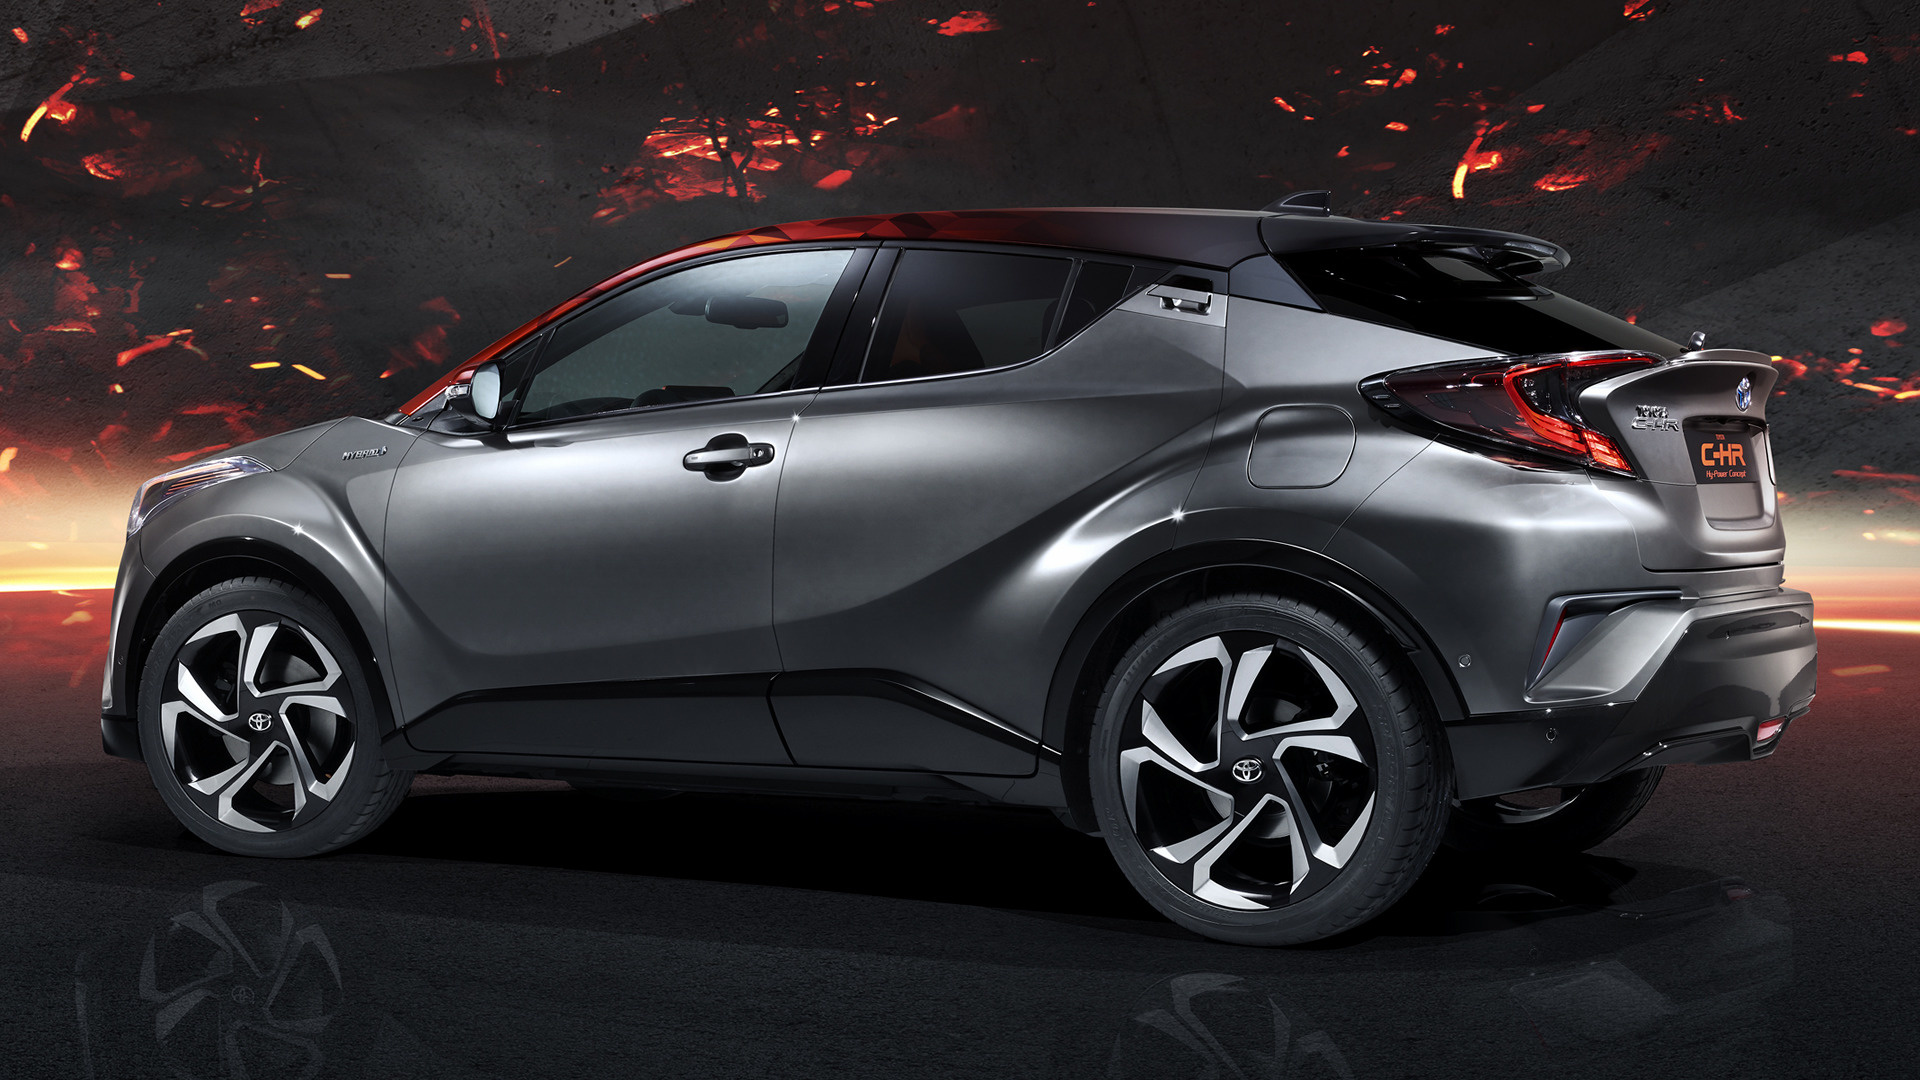 Car Jeep 2017 Toyota C-hr Hy-power Concept - Wallpapers And Hd